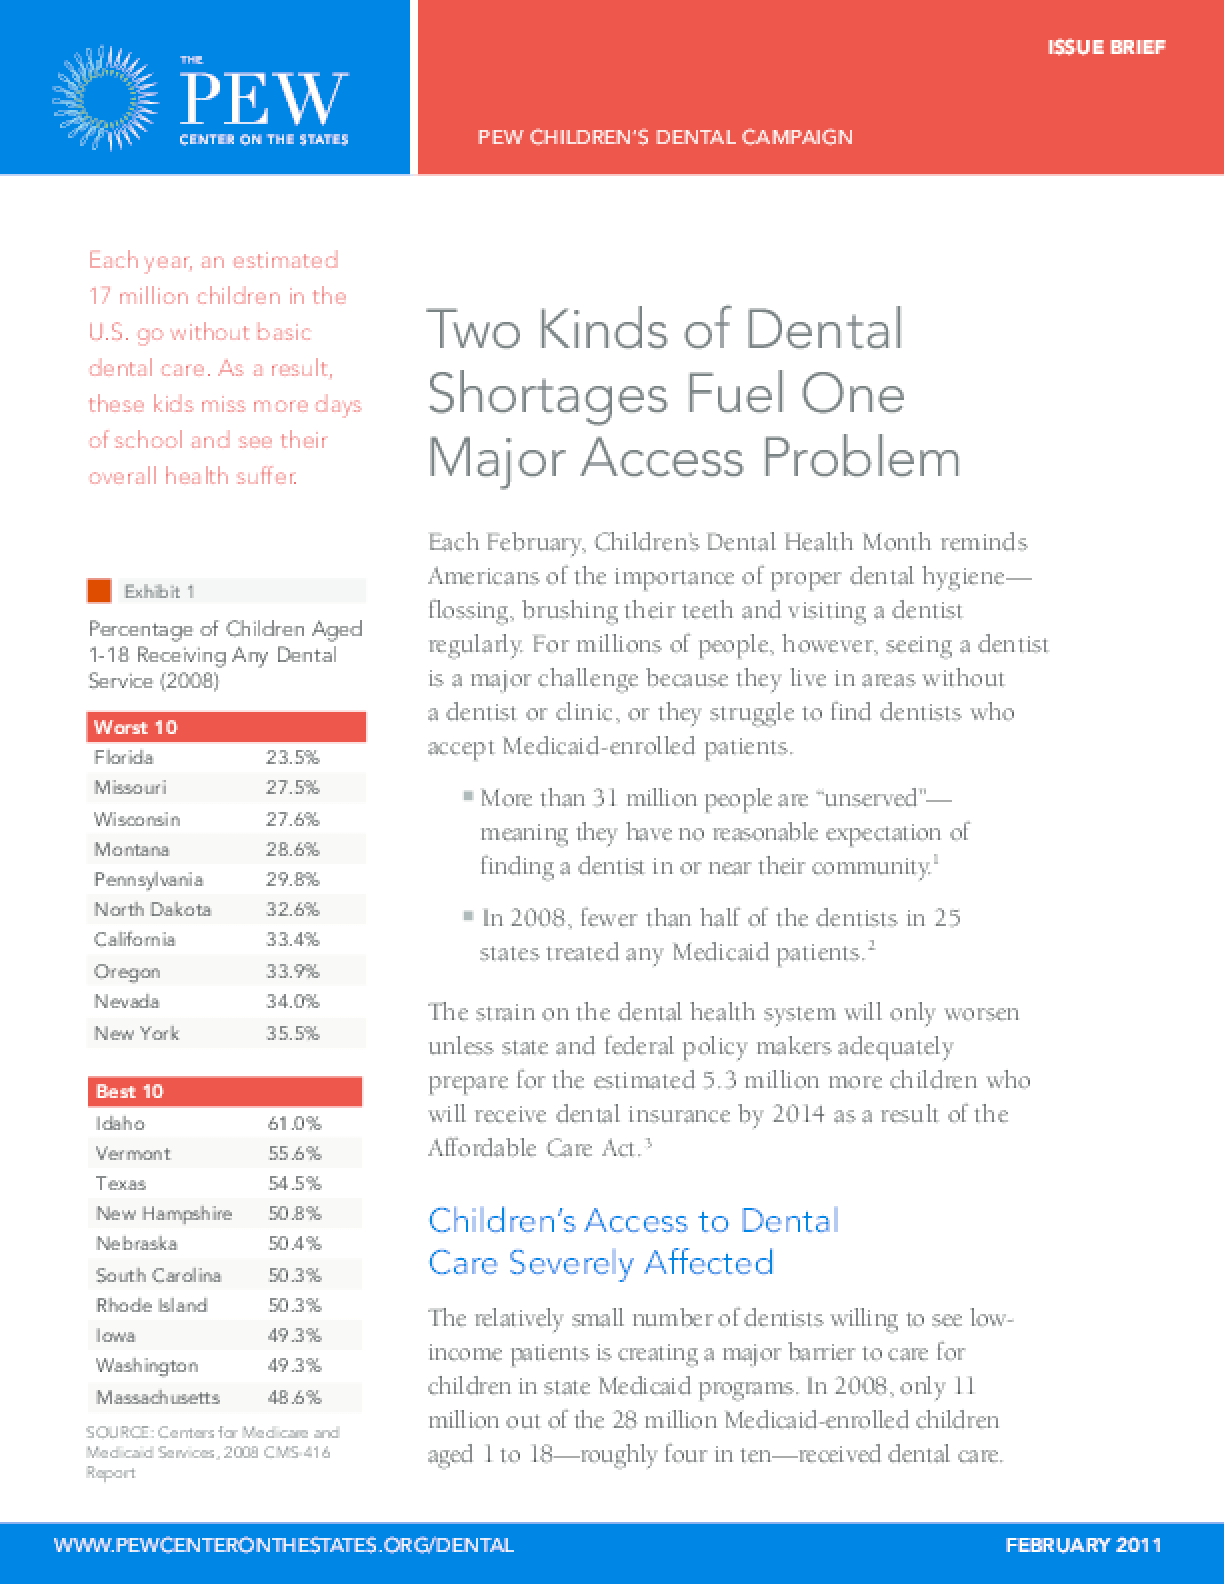 Two Kinds of Dental Shortages Fuel One Major Access Problem